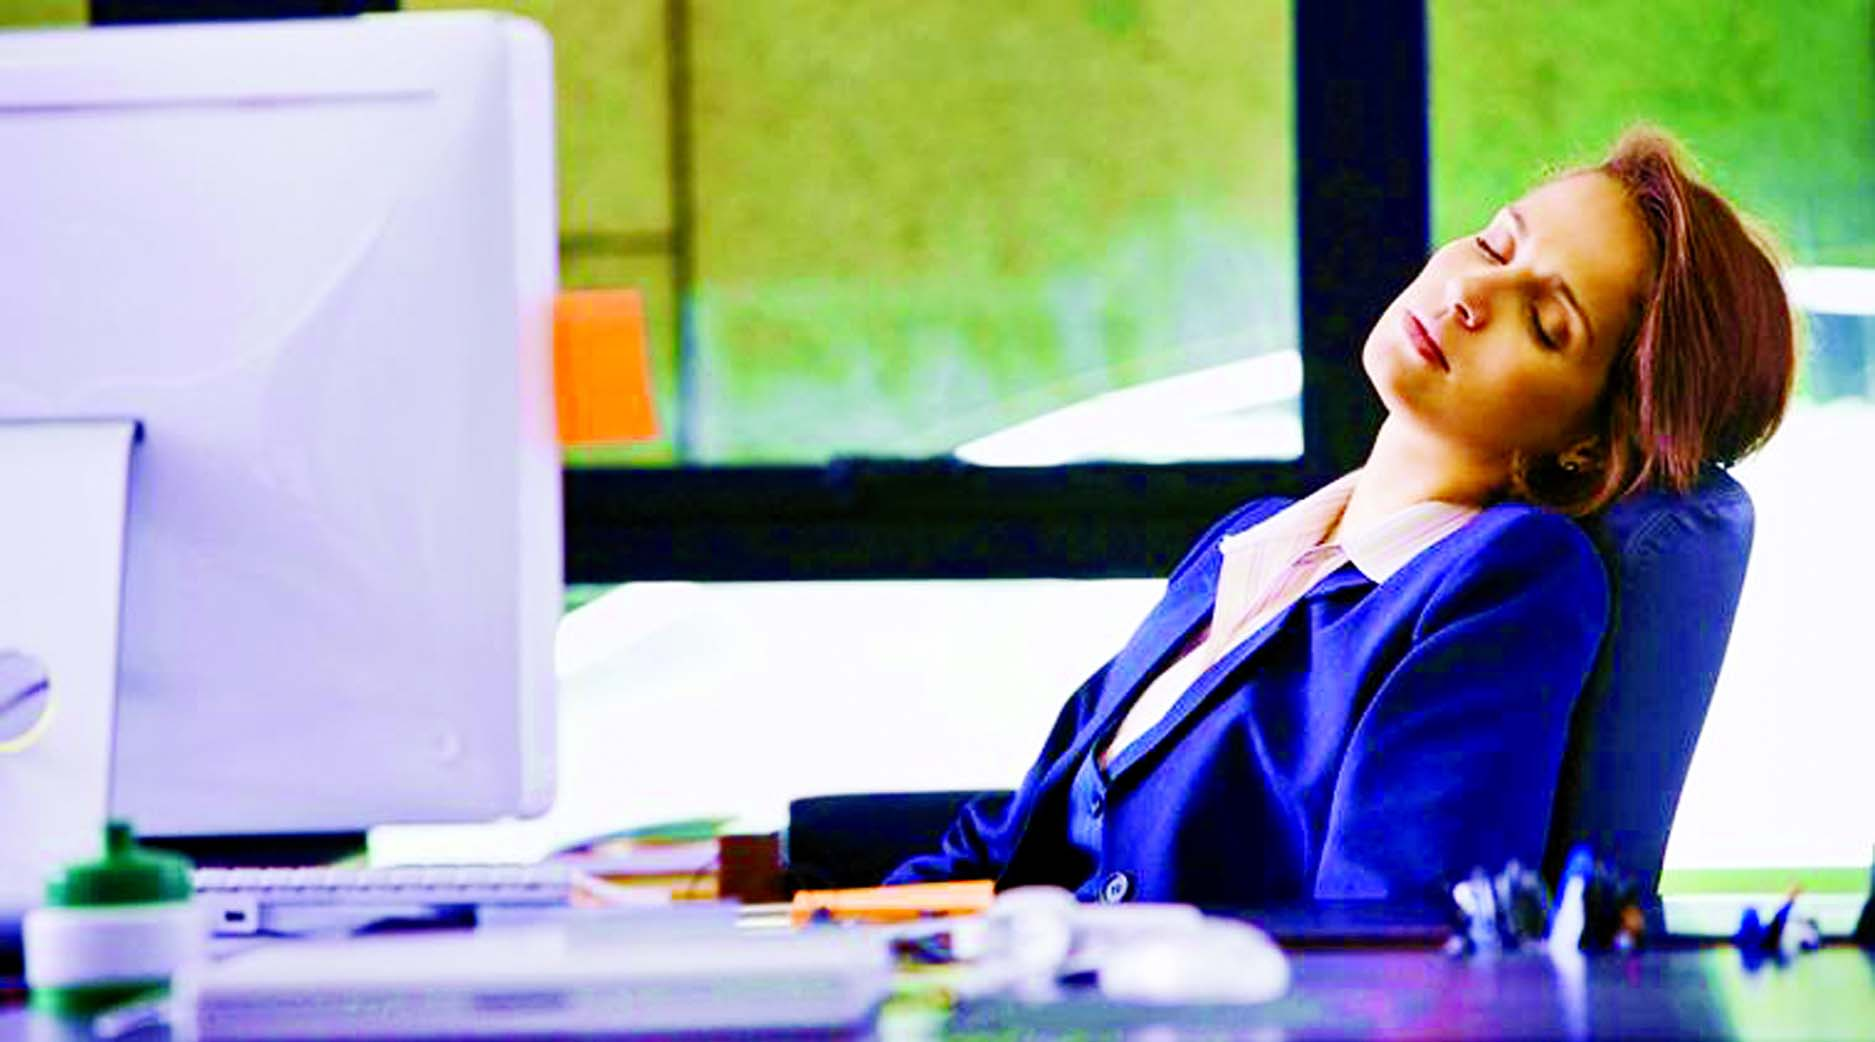 Afternoon power nap can  boost employees' creativity